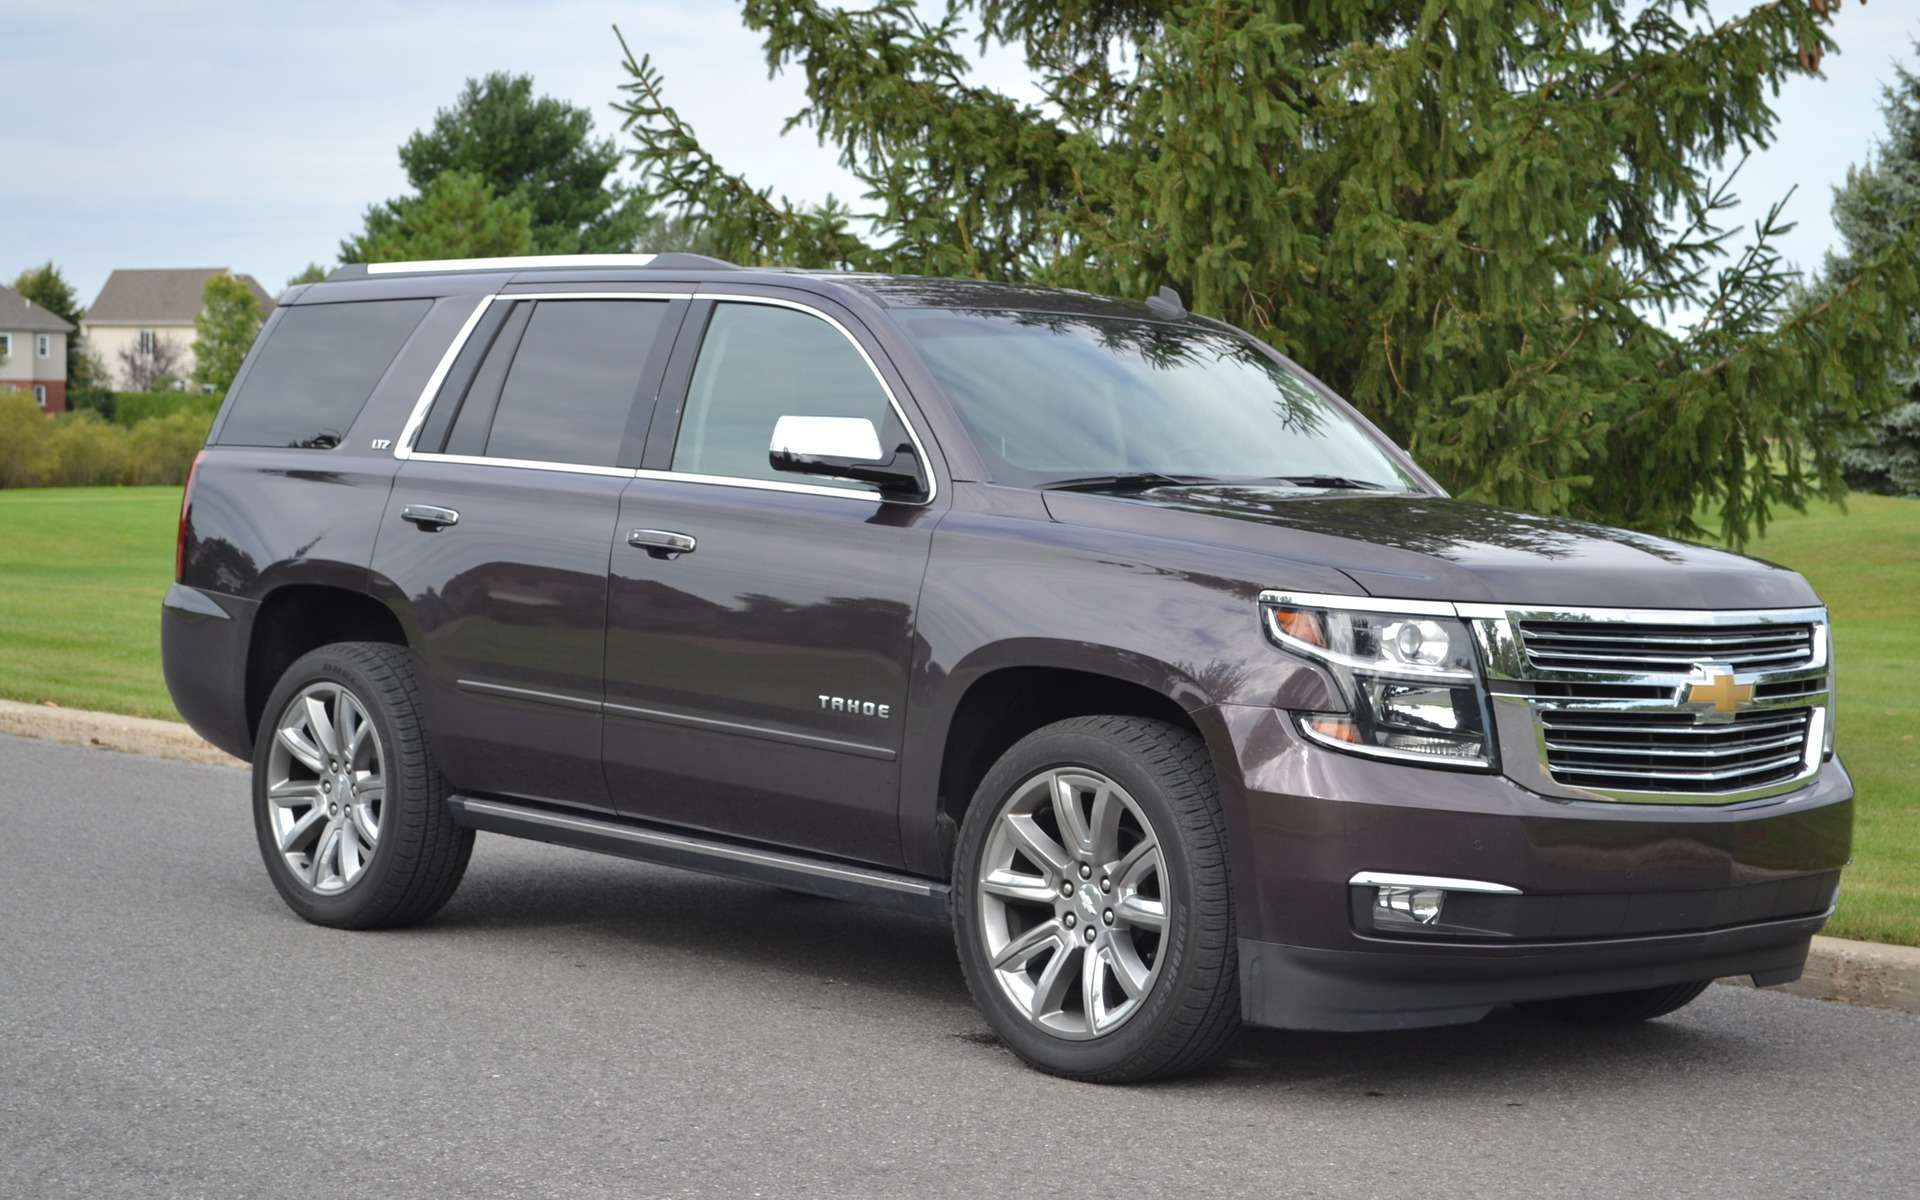 2016-Chevrolet-Tahoe-LTZ-SUV-Photo-Gallery